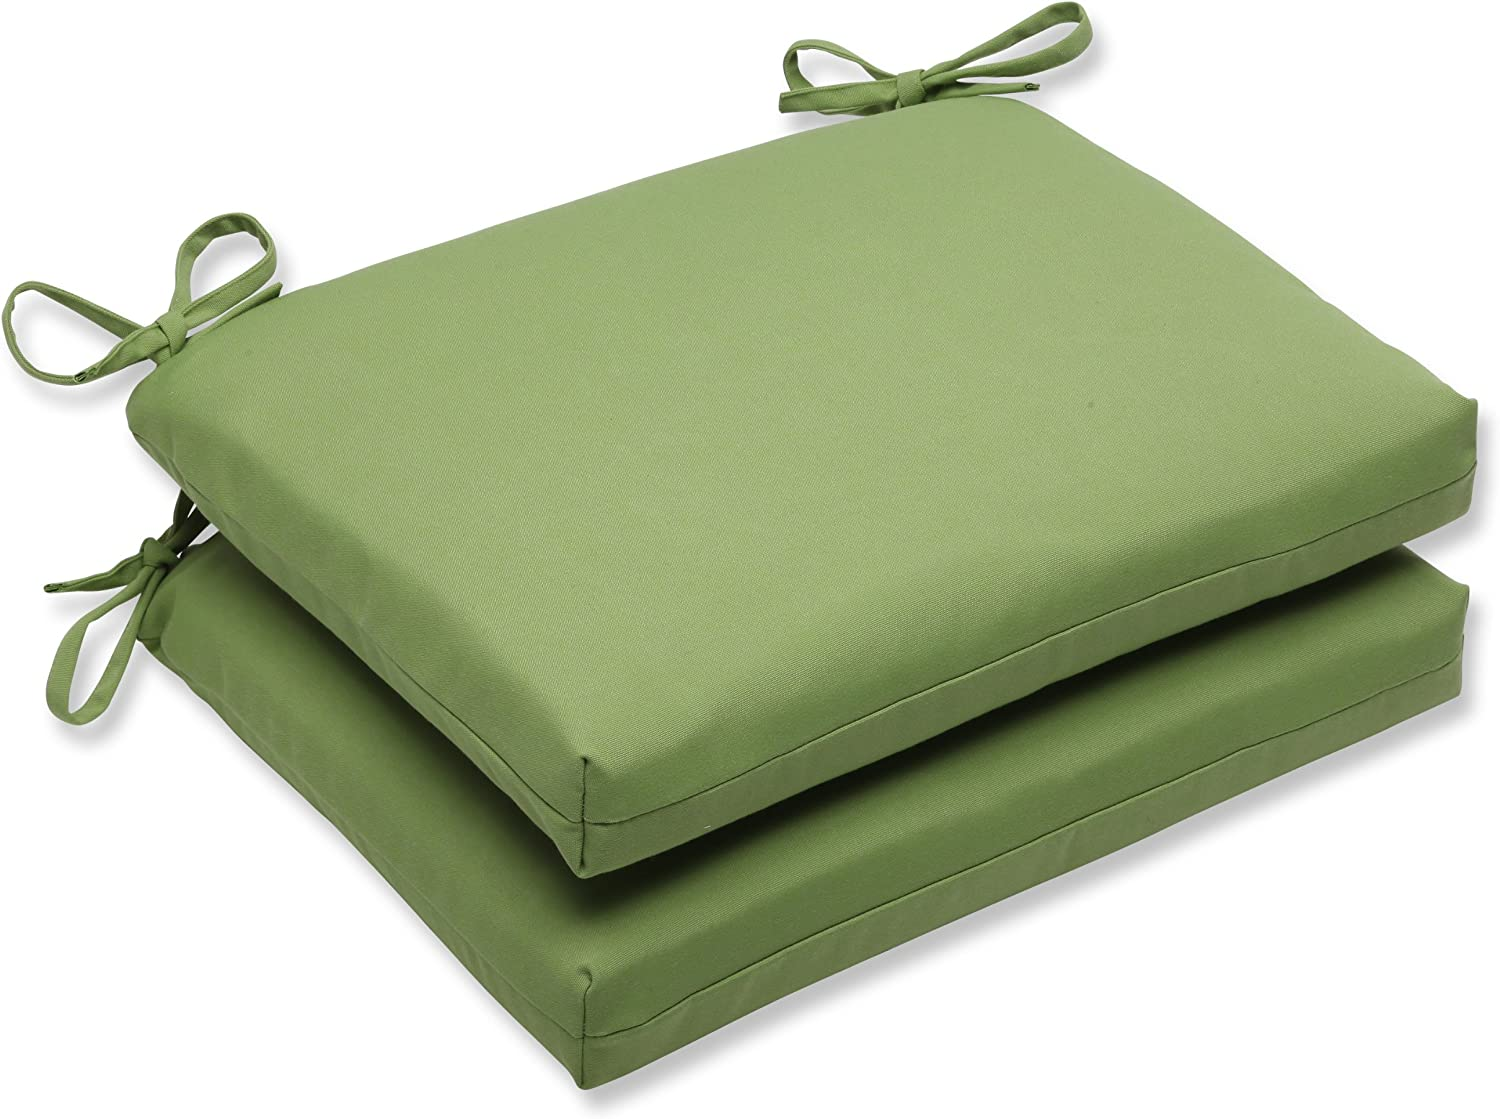 Pillow Perfect Indoor/Outdoor Squared Corners Seat Cushion with Sunbrella Canvas Ginkgo Fabric, Set of 2, 18.5 in. L X 16 in. W X 3 in. D, Green